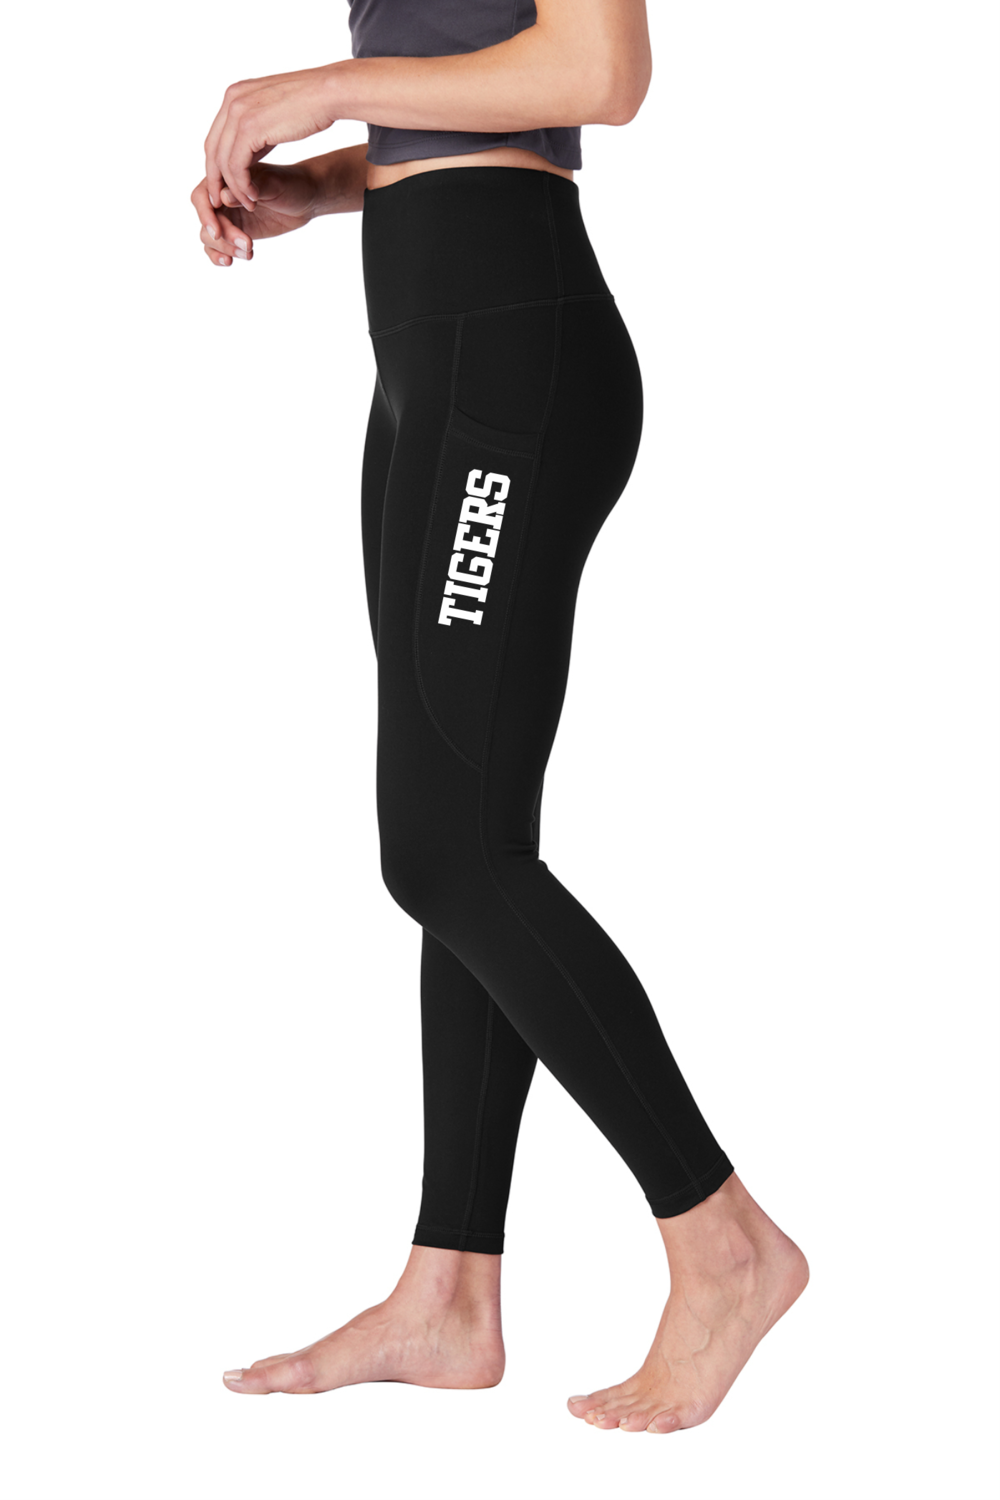 Lpst891 Sport Tek Leggings Sales for yoga clothes have increased 45 percent year over year. tee d up printing